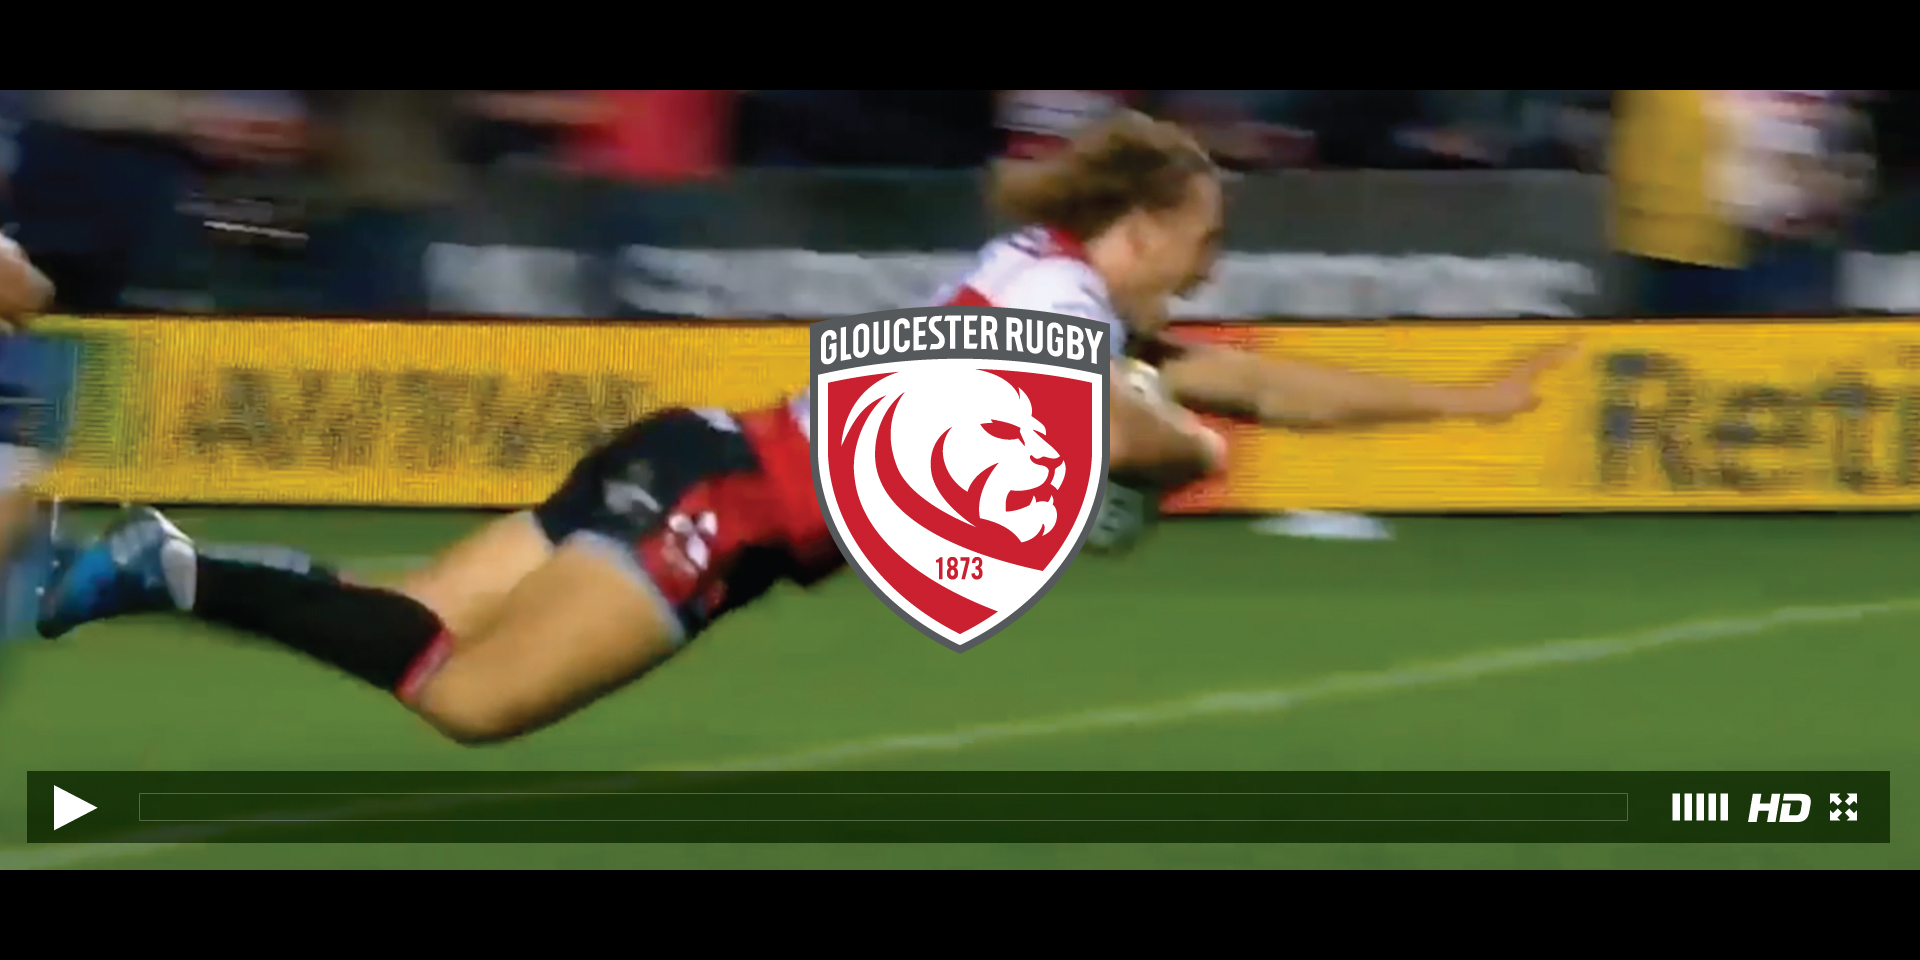 B009-2066-Gloucester-Rugby-Launch-Video-Wide-1.jpg